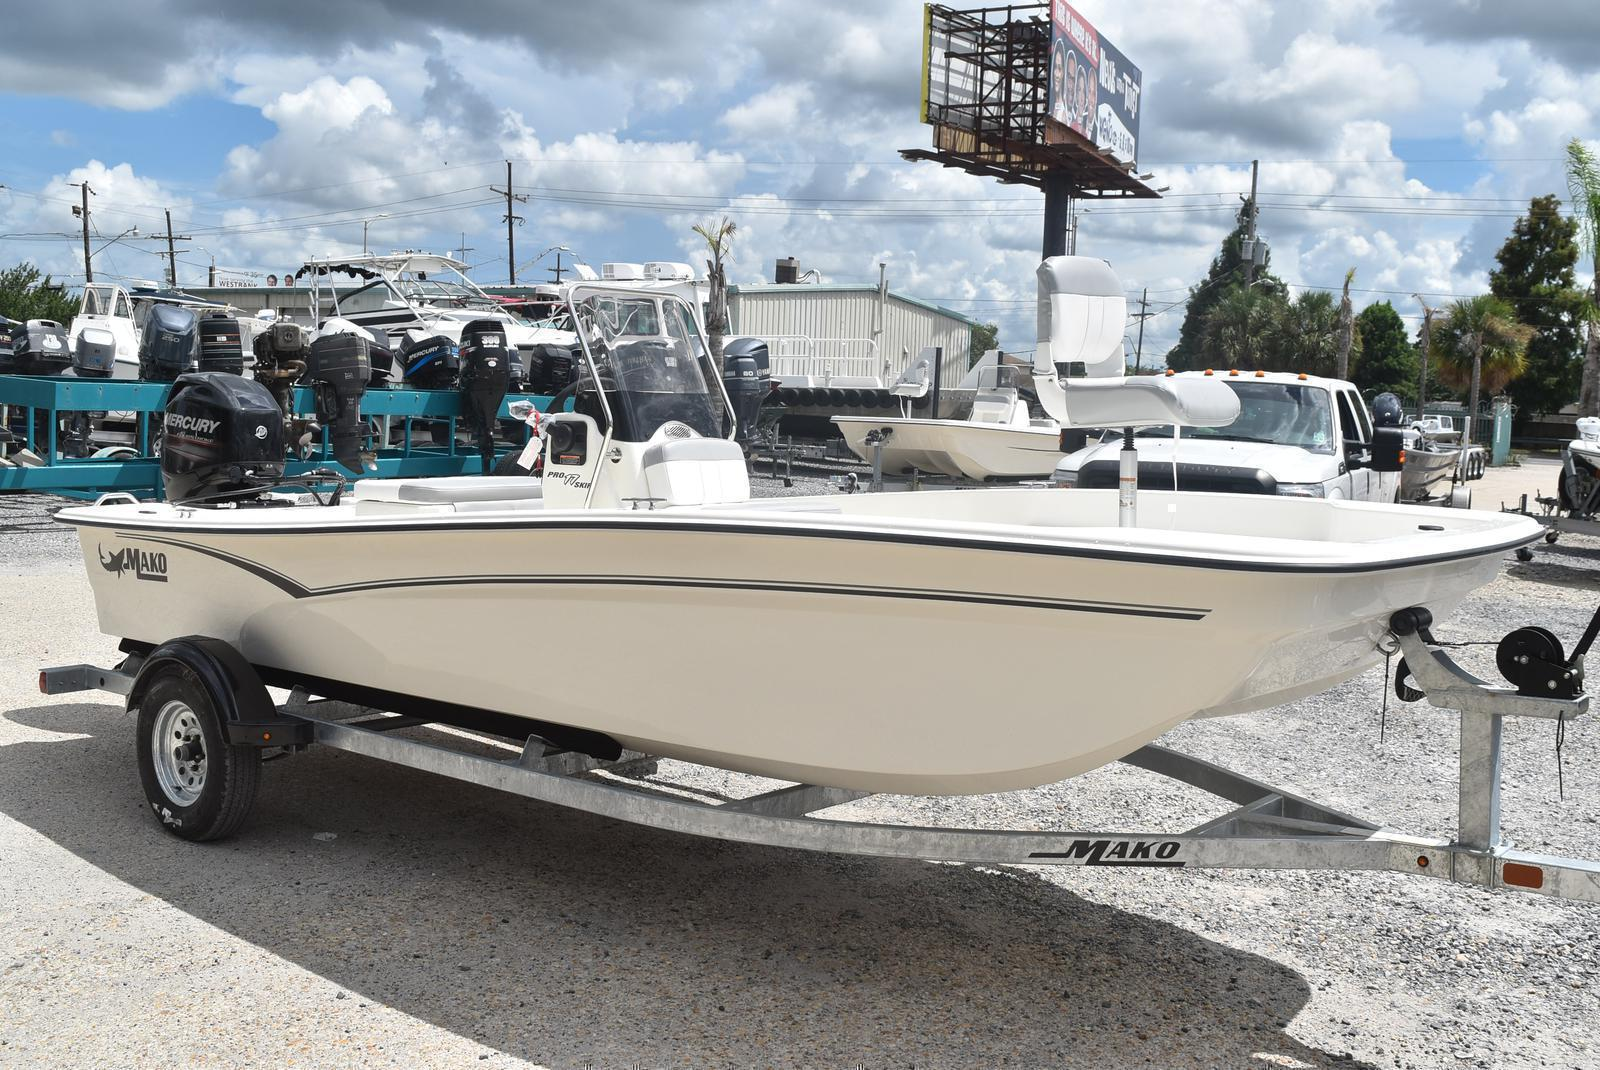 2020 Mako boat for sale, model of the boat is Pro Skiff 17, 75 ELPT & Image # 671 of 702